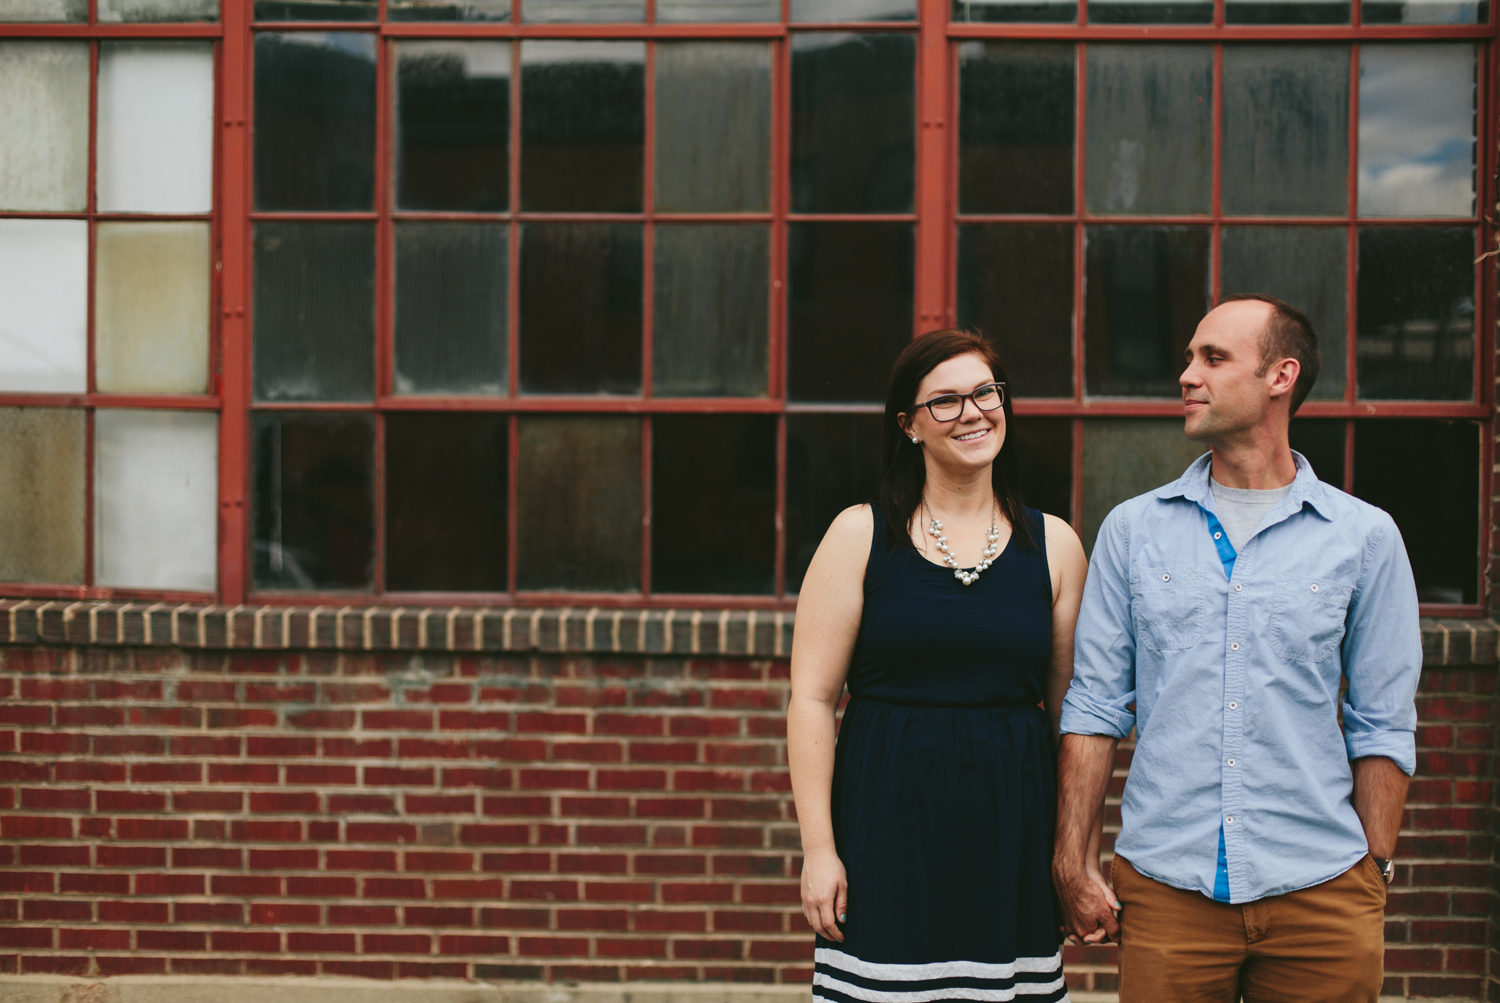 Jillian VanZytveld Photography Denver Colorado Engagement Portraits 31.jpg